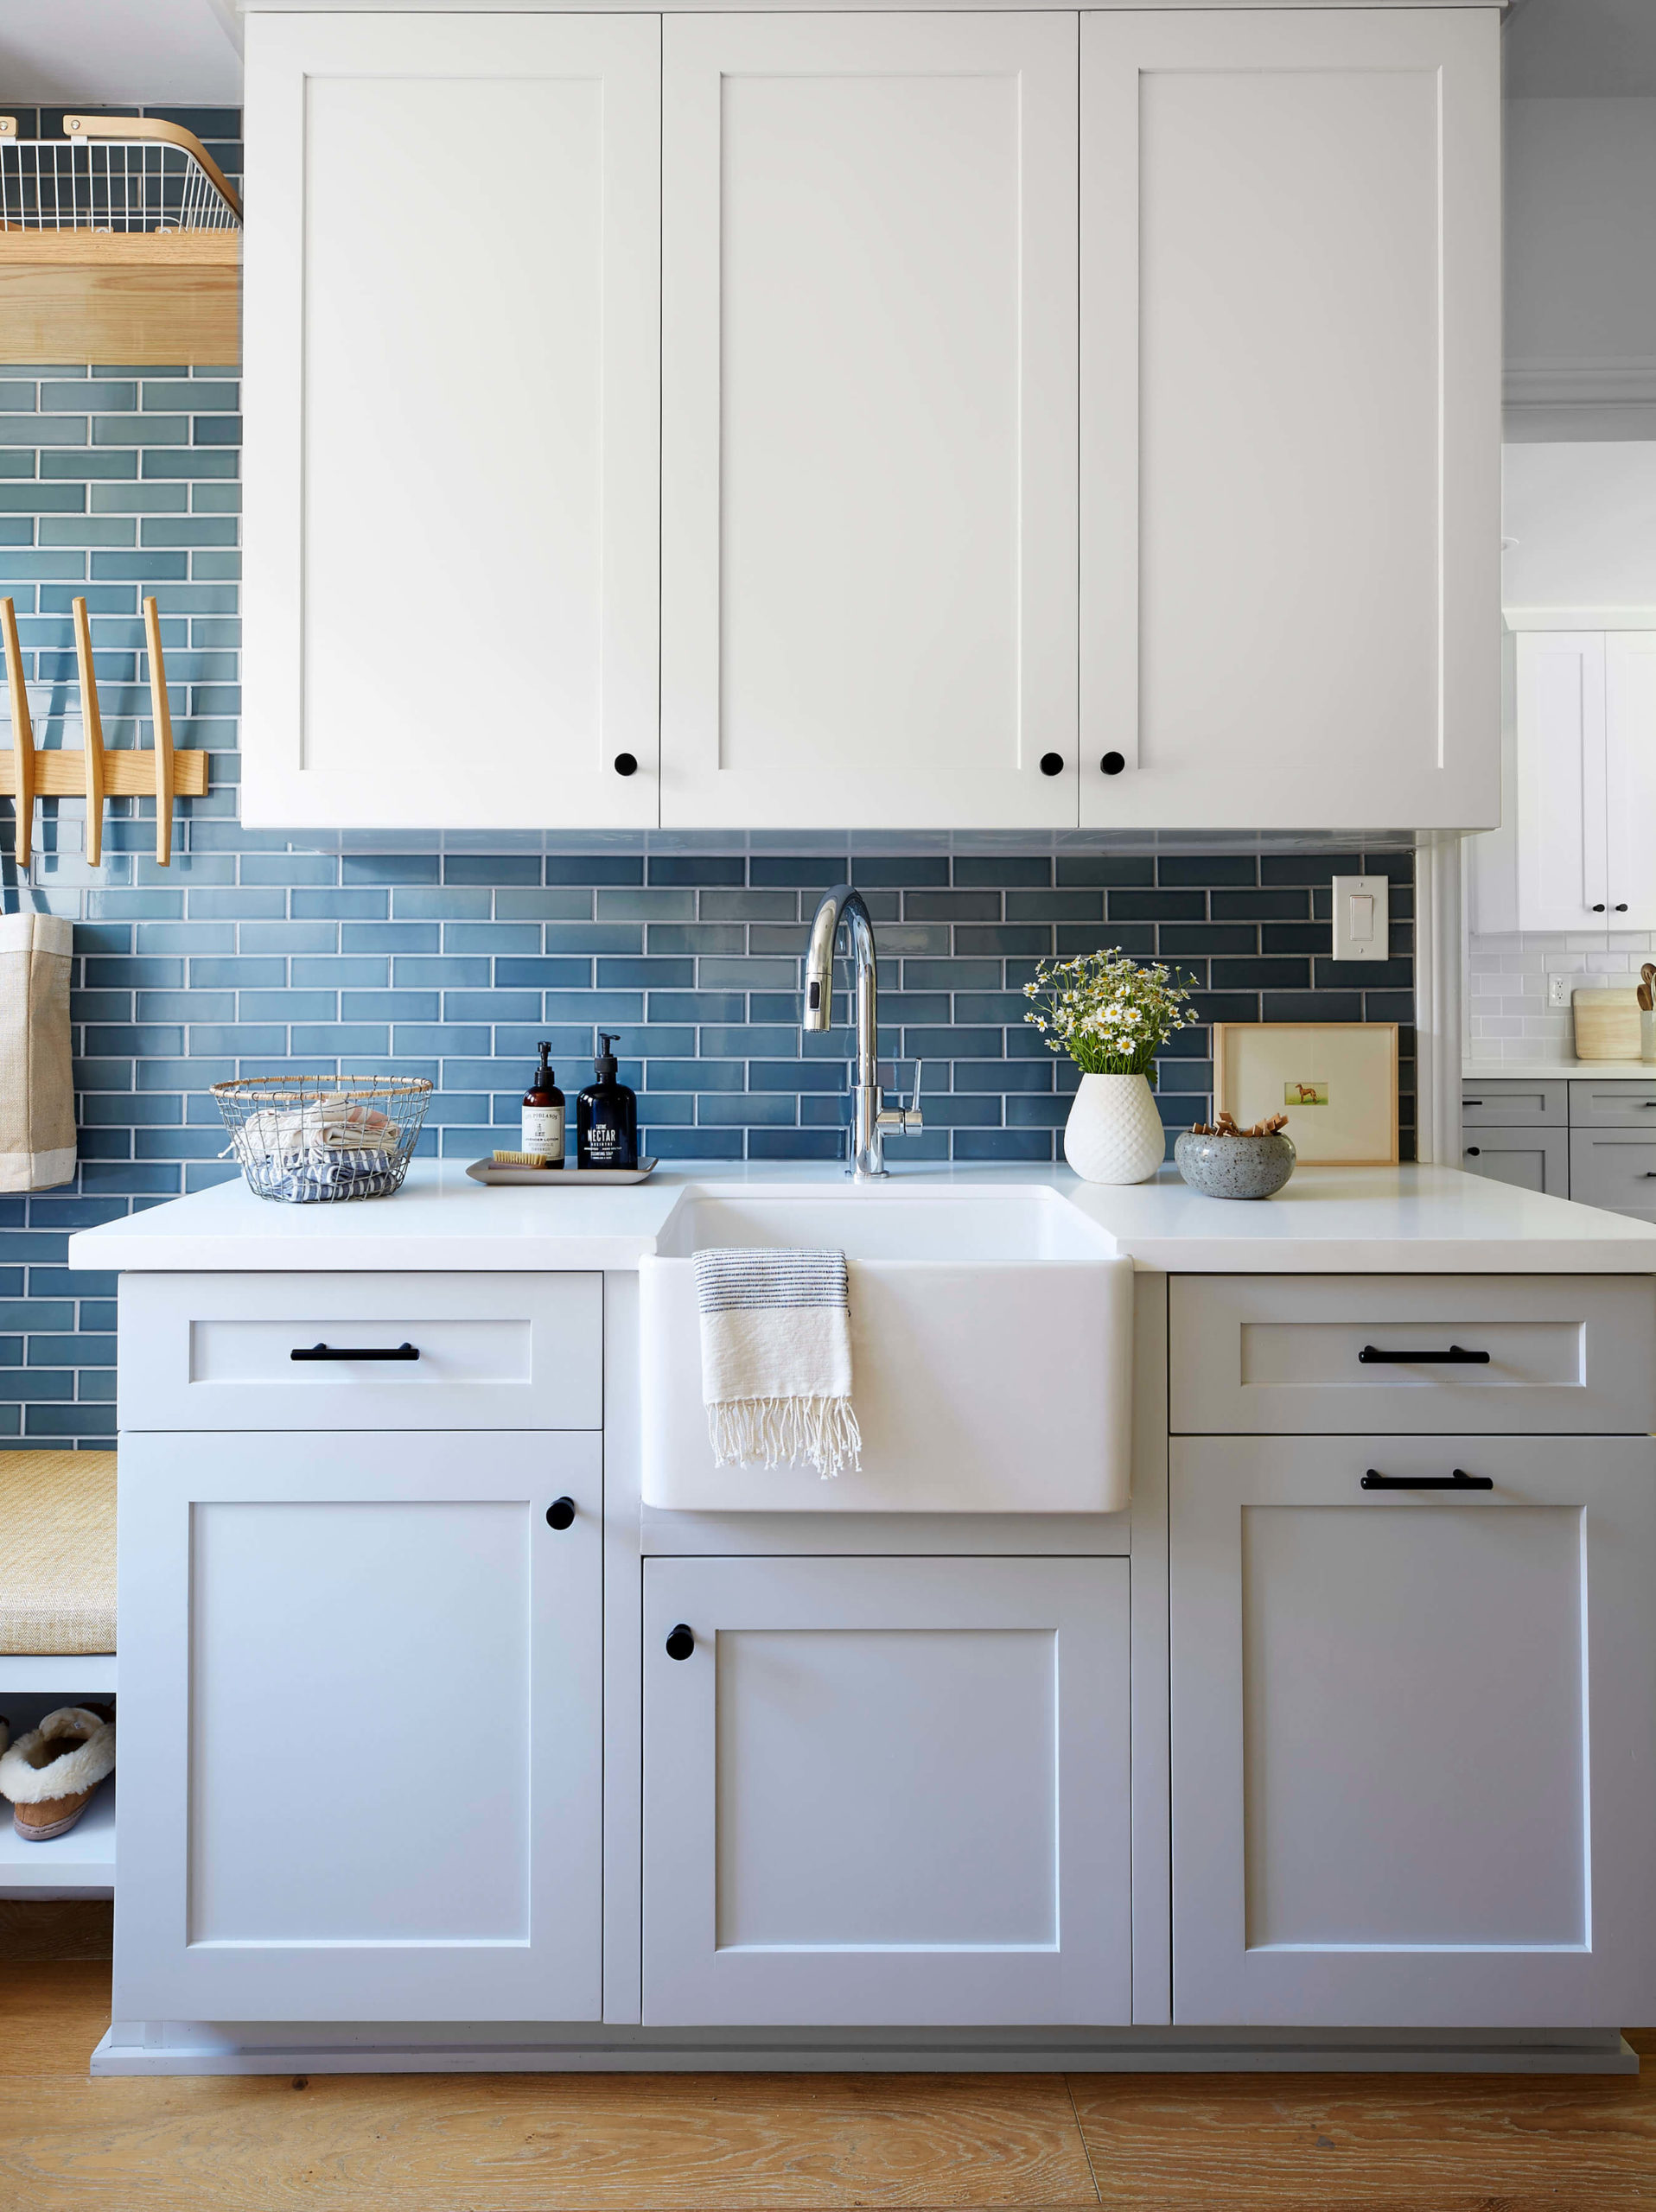 White and grey laundry cabinets interior design by Ginny Macdonald Design